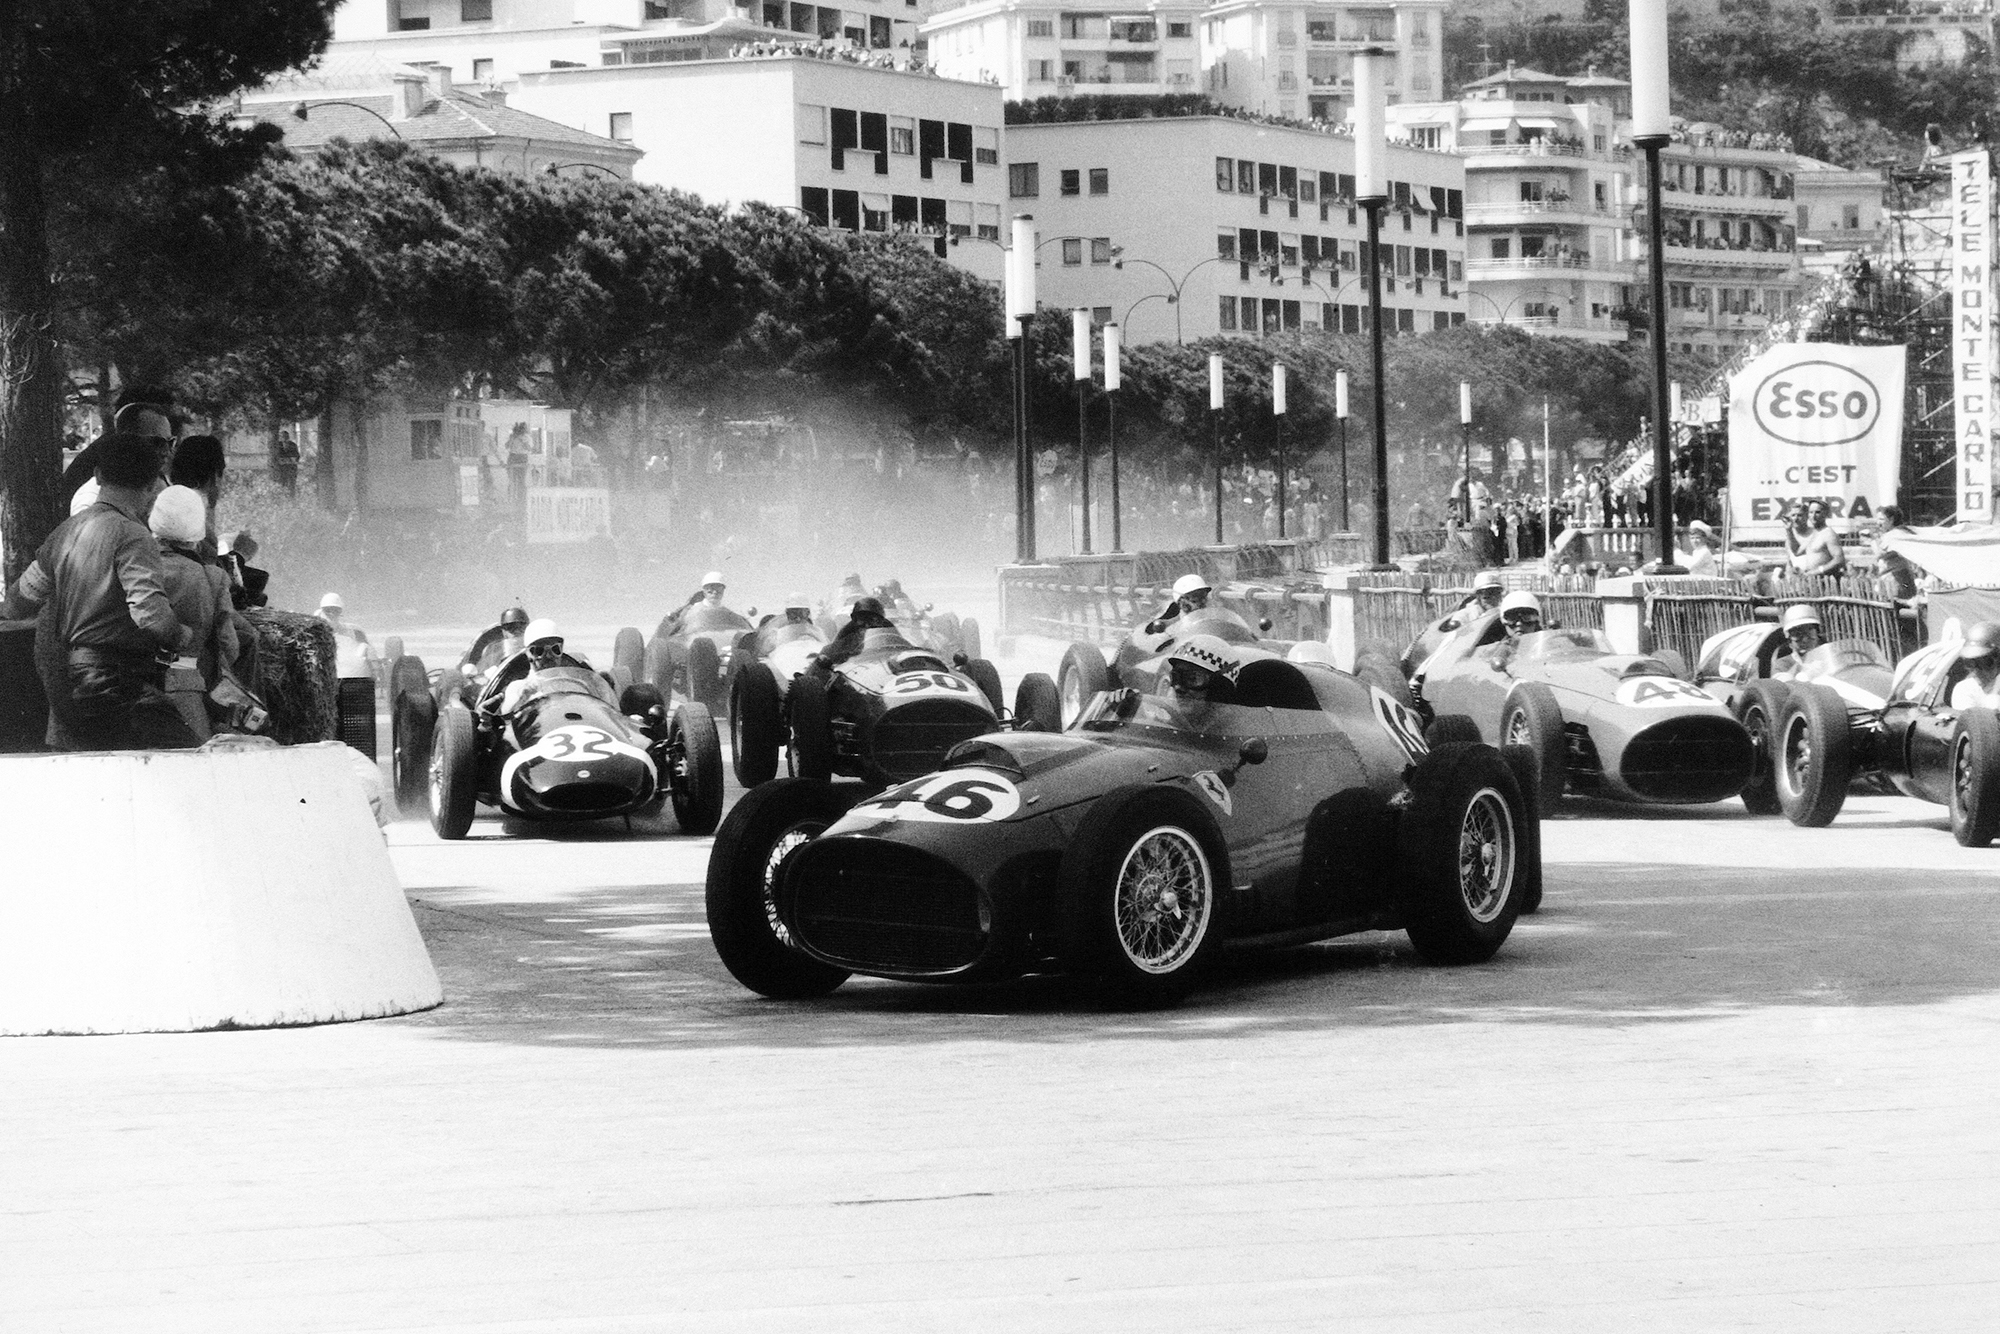 Jean Behra driving a Ferrari Dino 246, leads Stirling Moss in his Cooper T51-Climax and Jack Brabham driving Cooper T51-Climax at the start of the race.